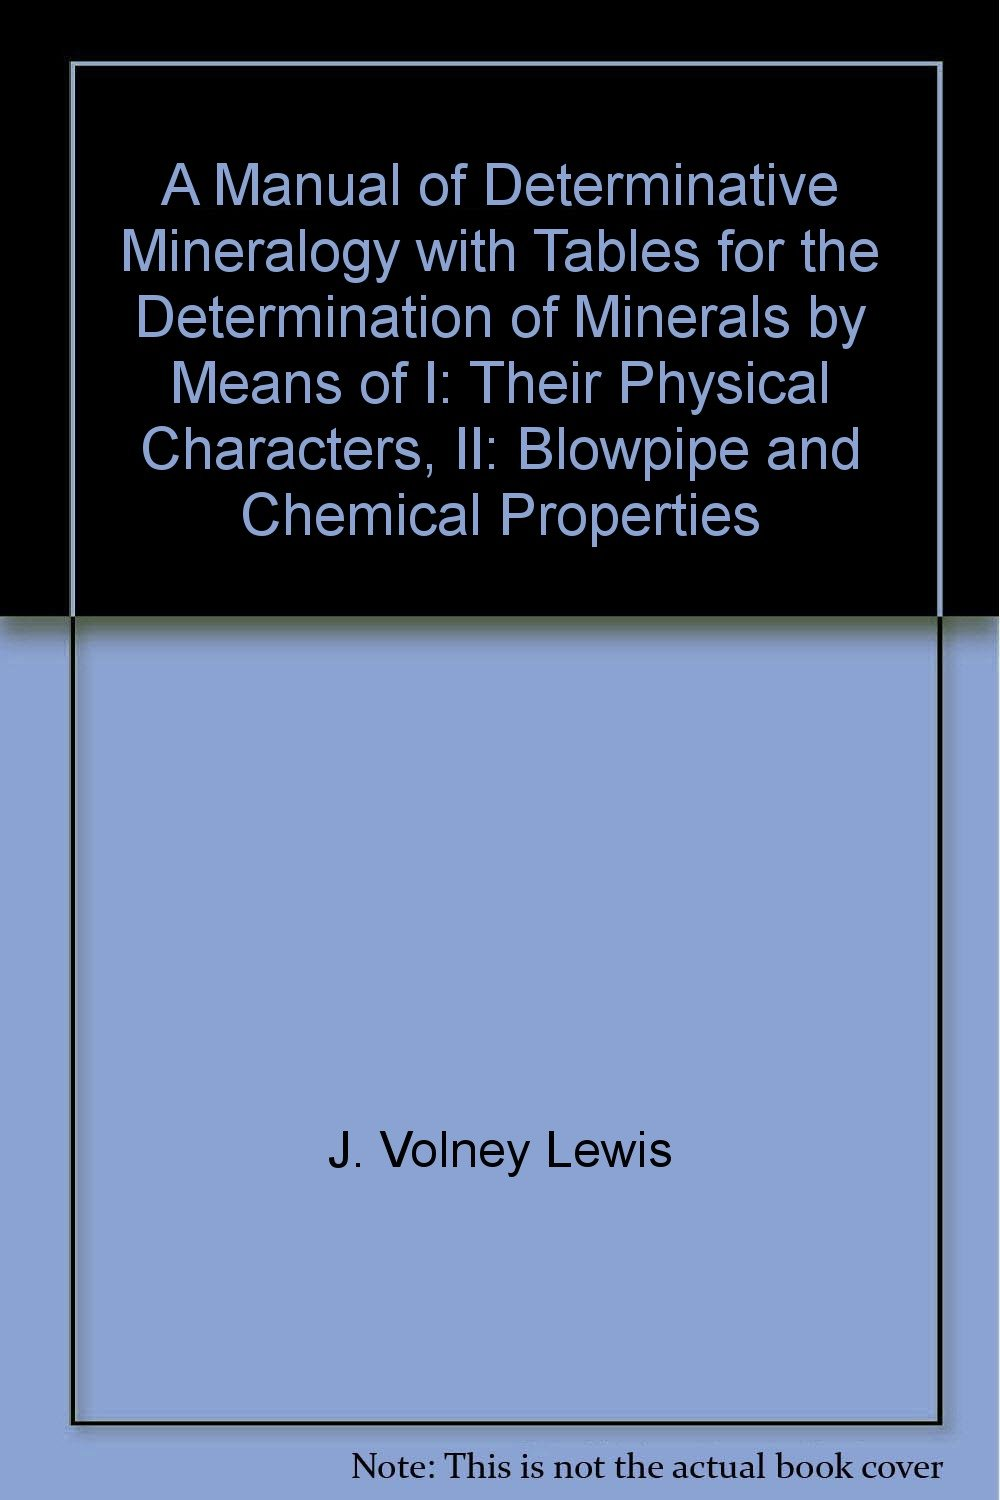 A Manual of Determinative Mineralogy with Tables for the